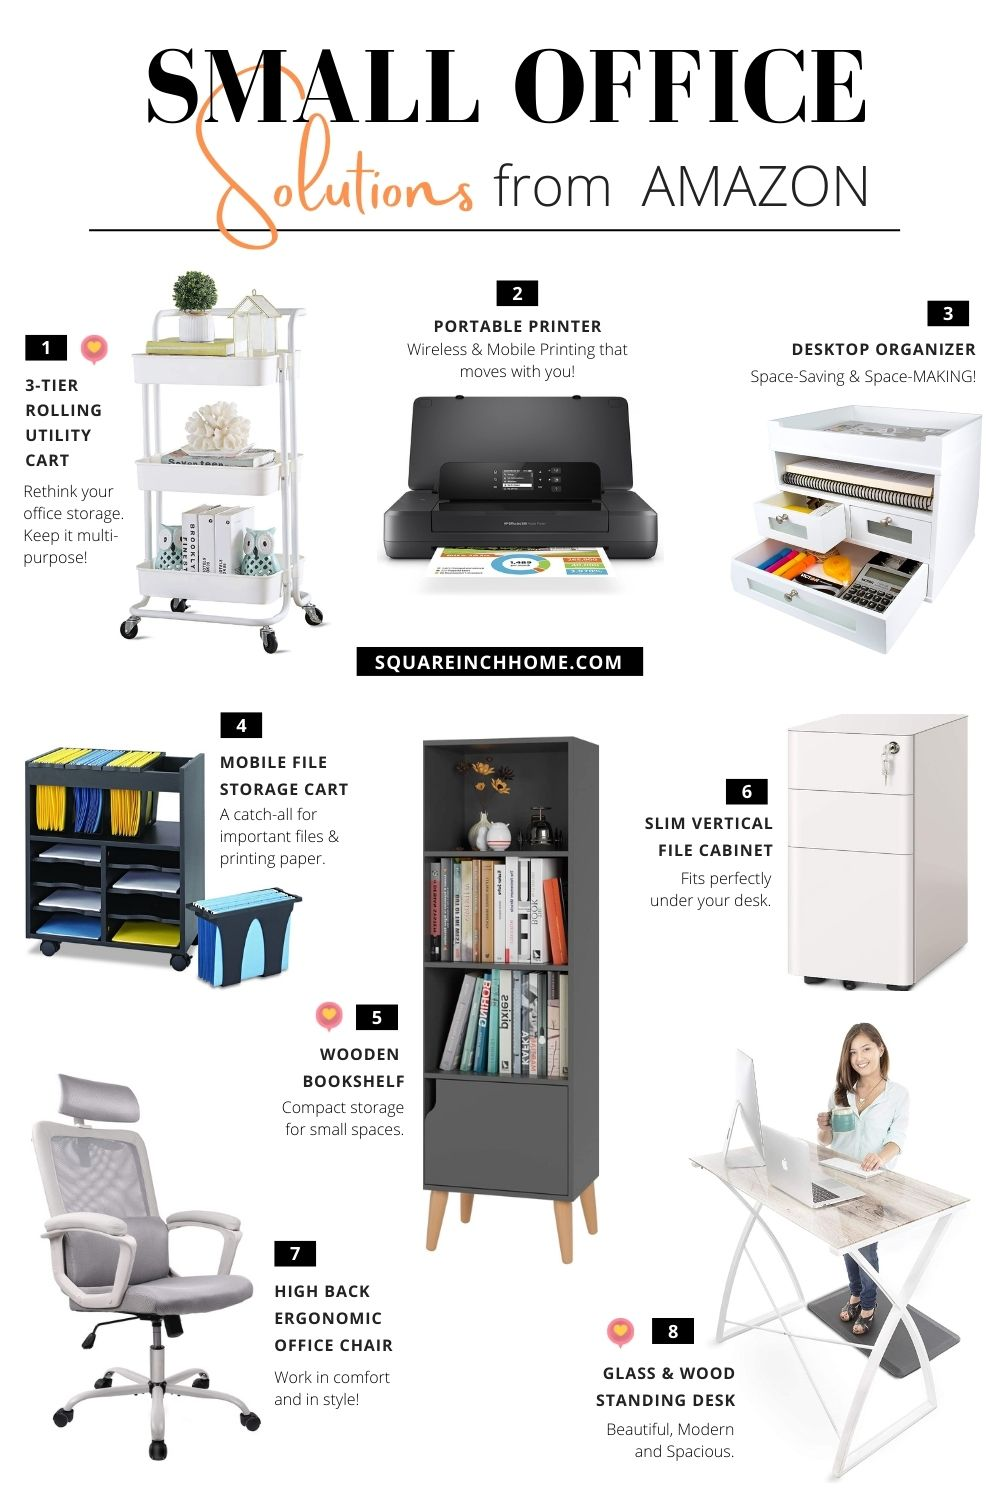 space-saving products for small office from amazon